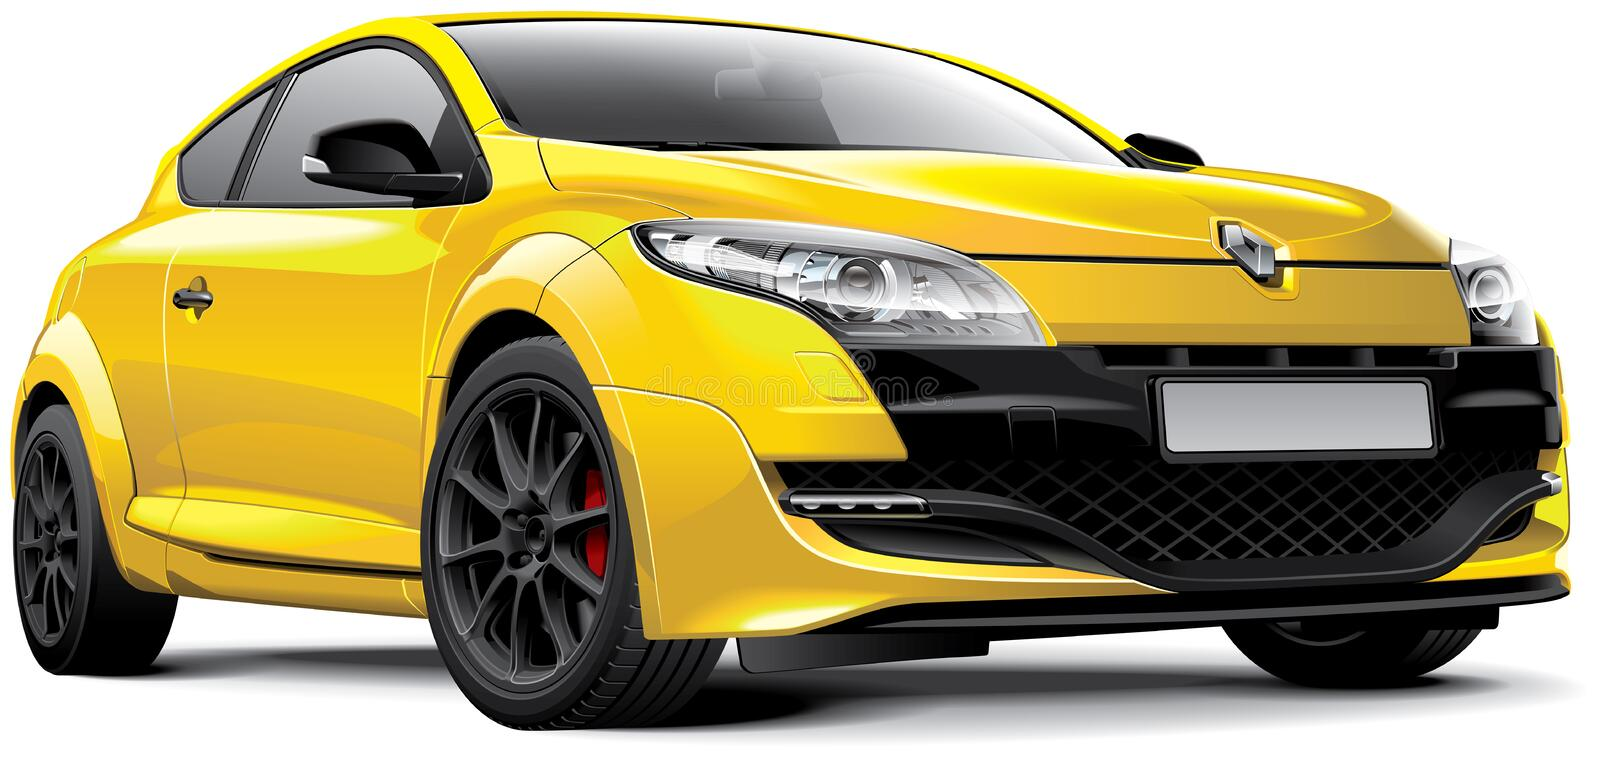 Renault Megane RS. Detail vector image of yellow French hot hatch - Renault Megane RS, isolated on white background. File contains gradients, blends and